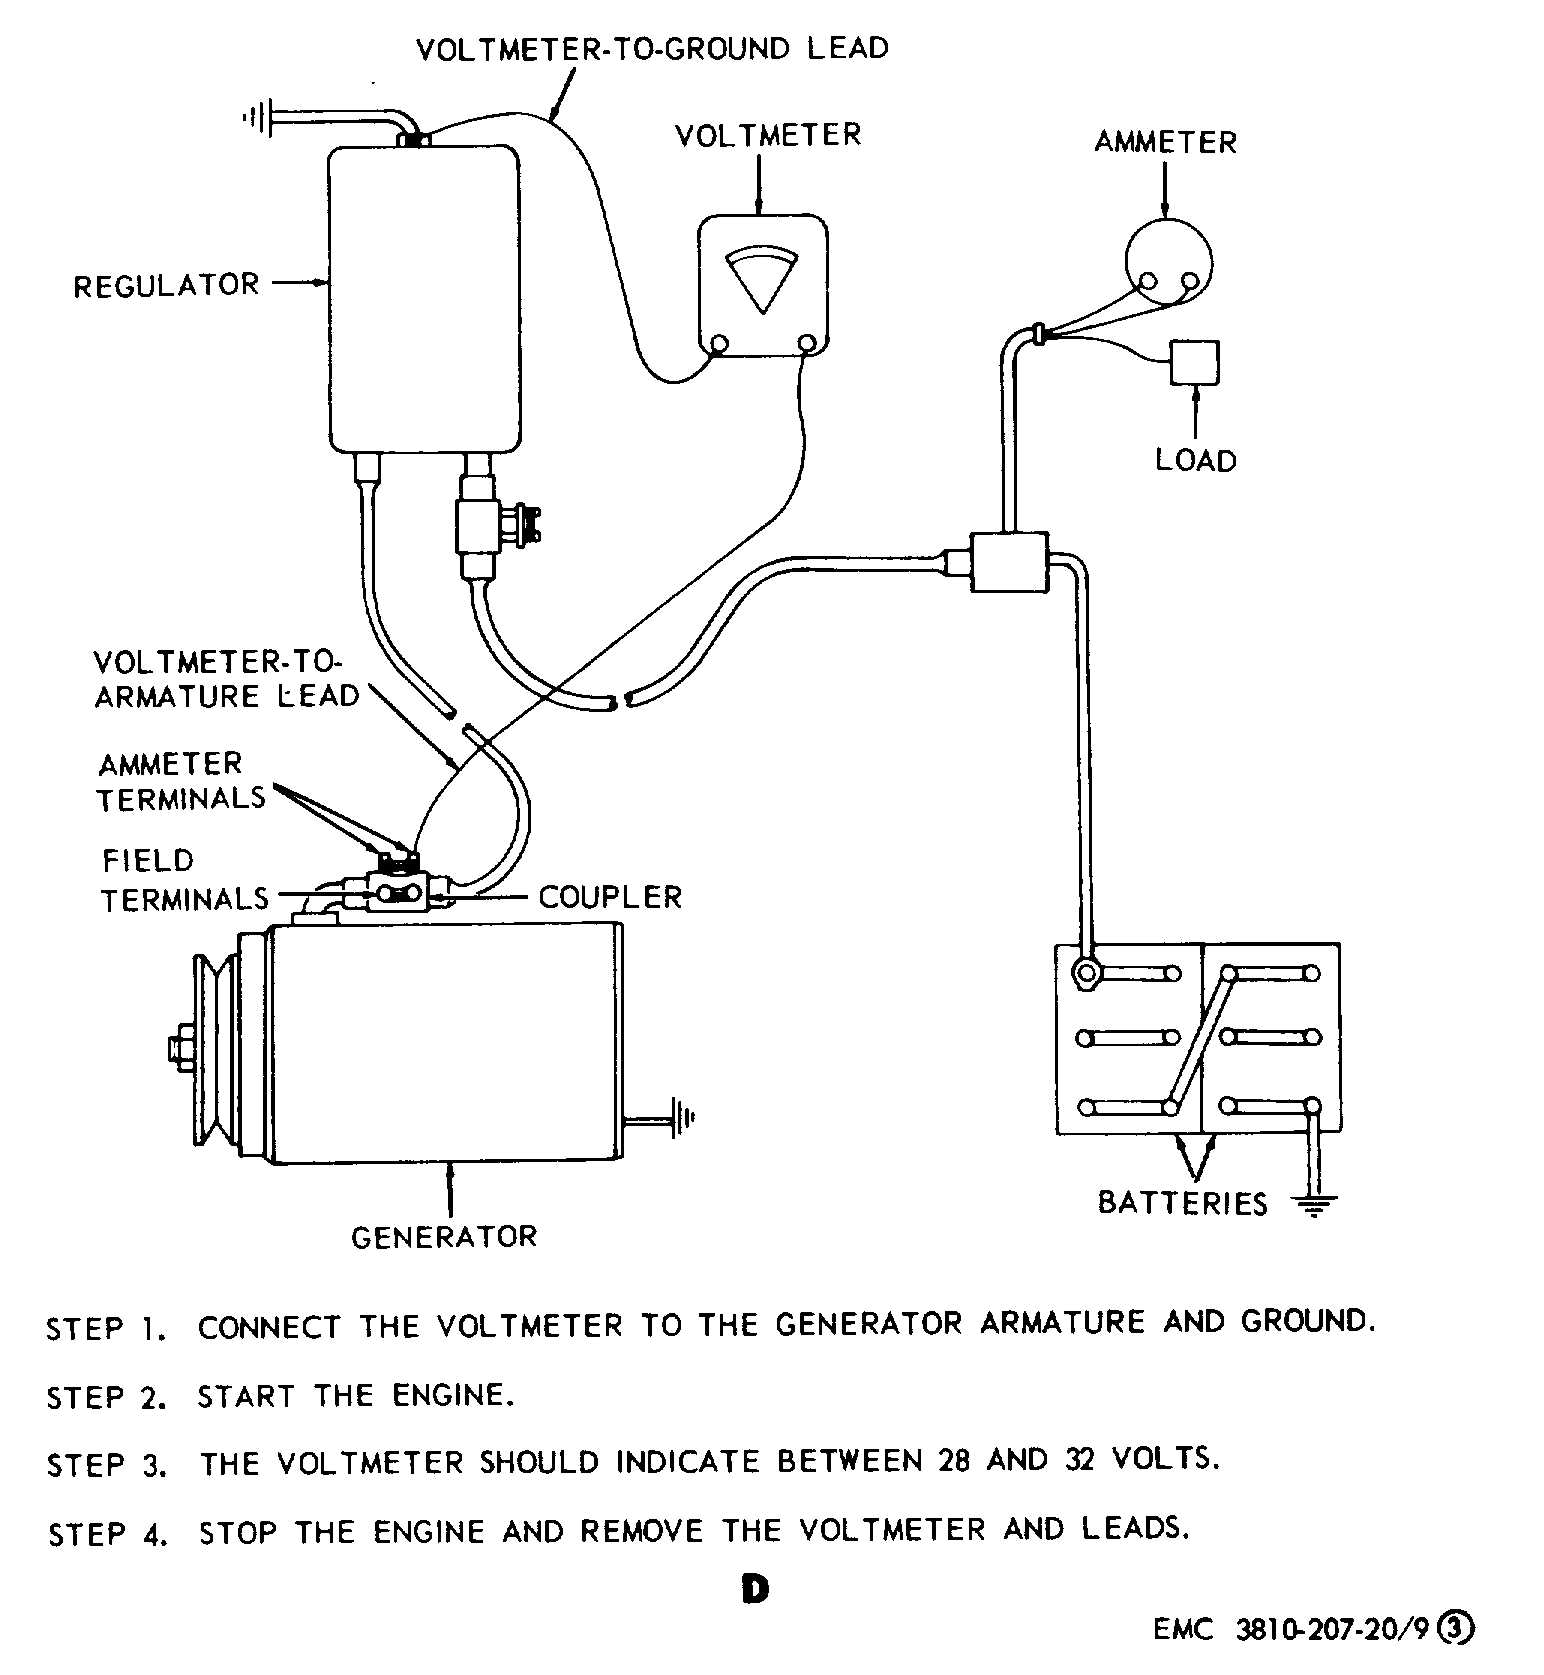 Ford 8N 12 Volt Conversion Wiring Diagram from wholefoodsonabudget.com